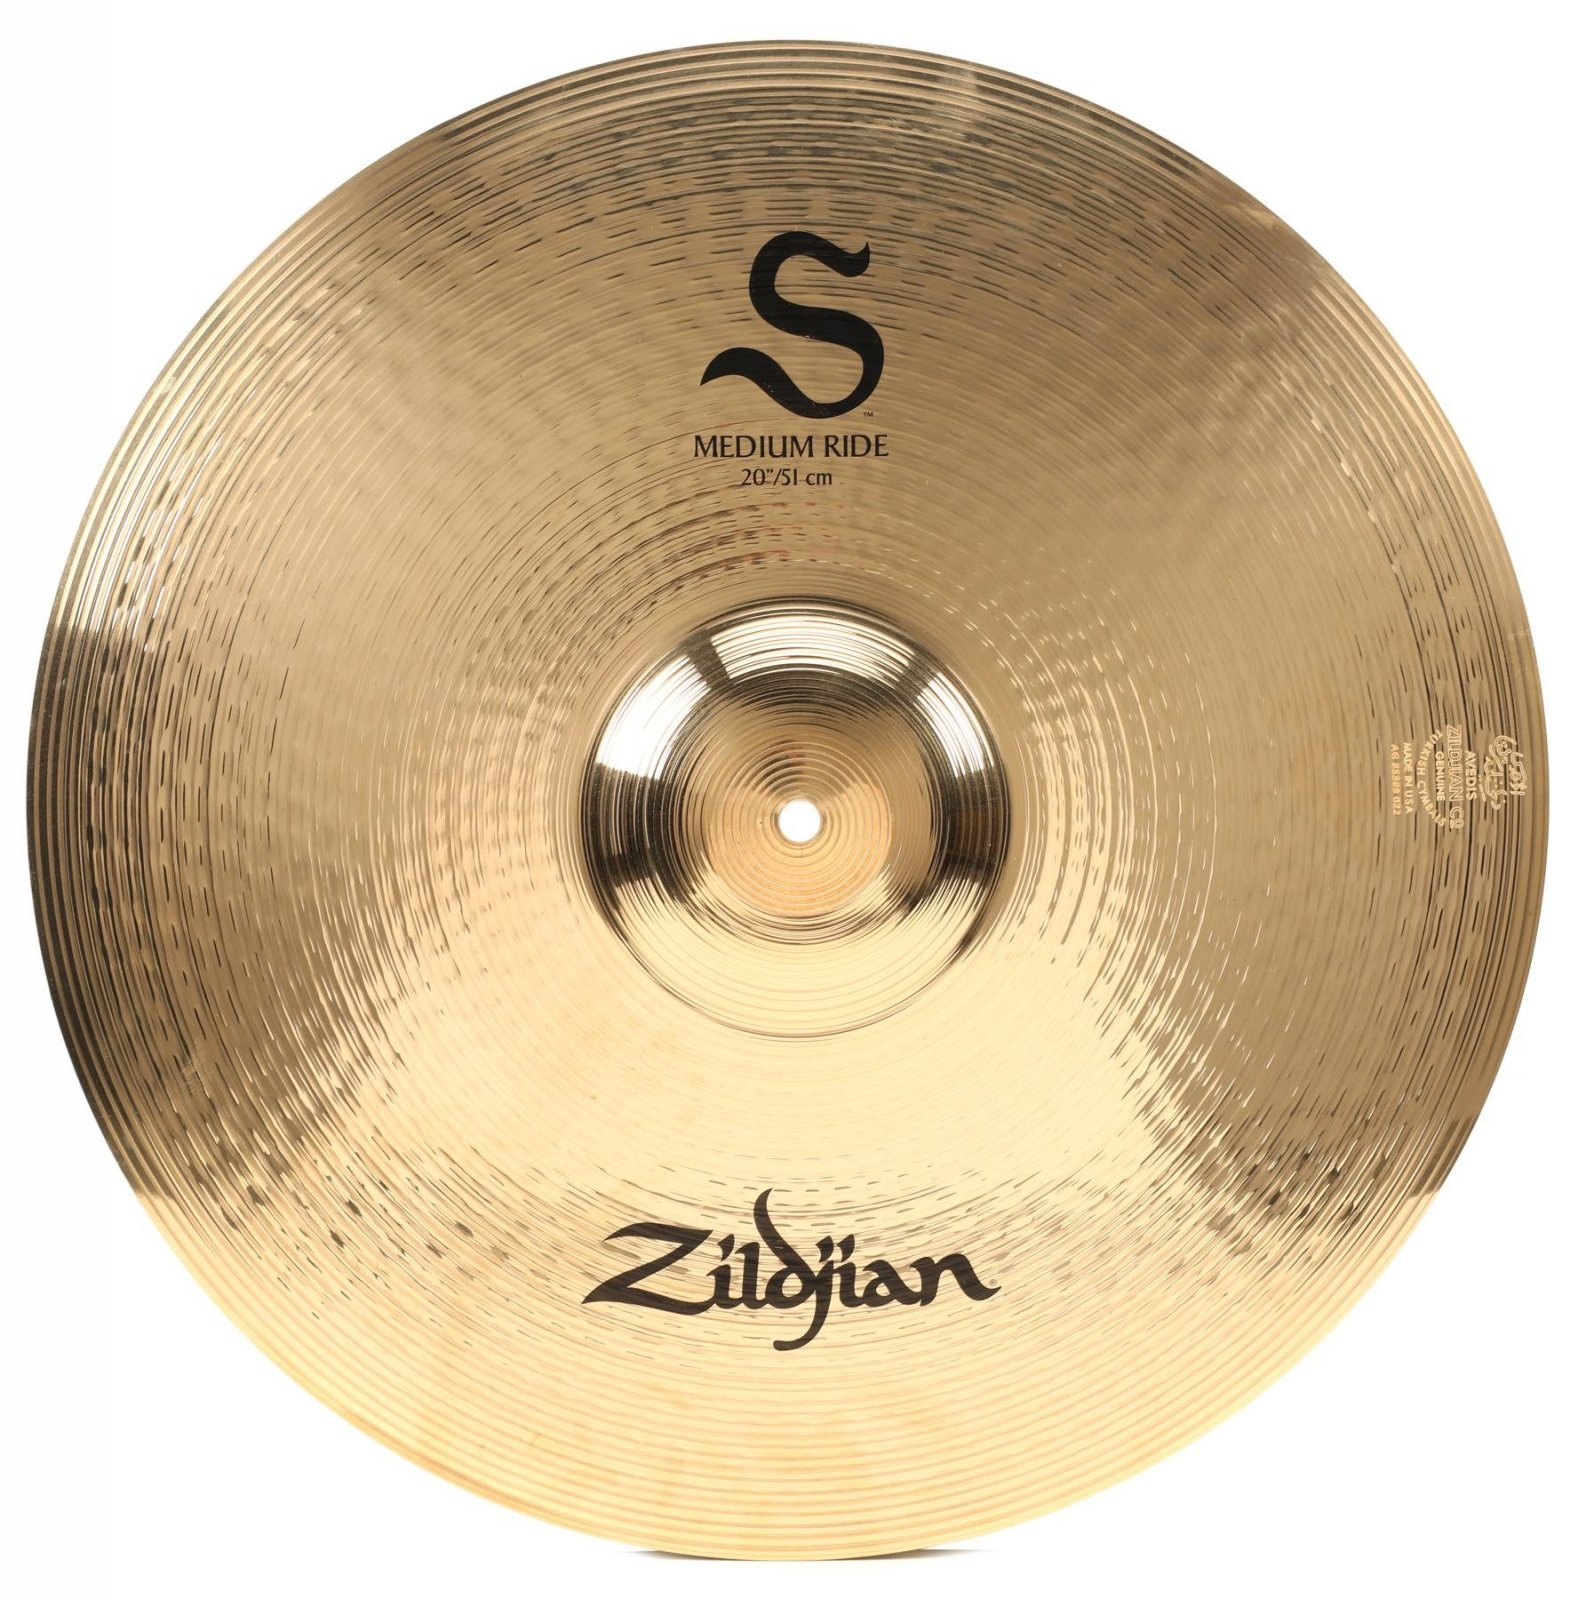 Zildjian S Performer 20 Medium Ride Cymbal